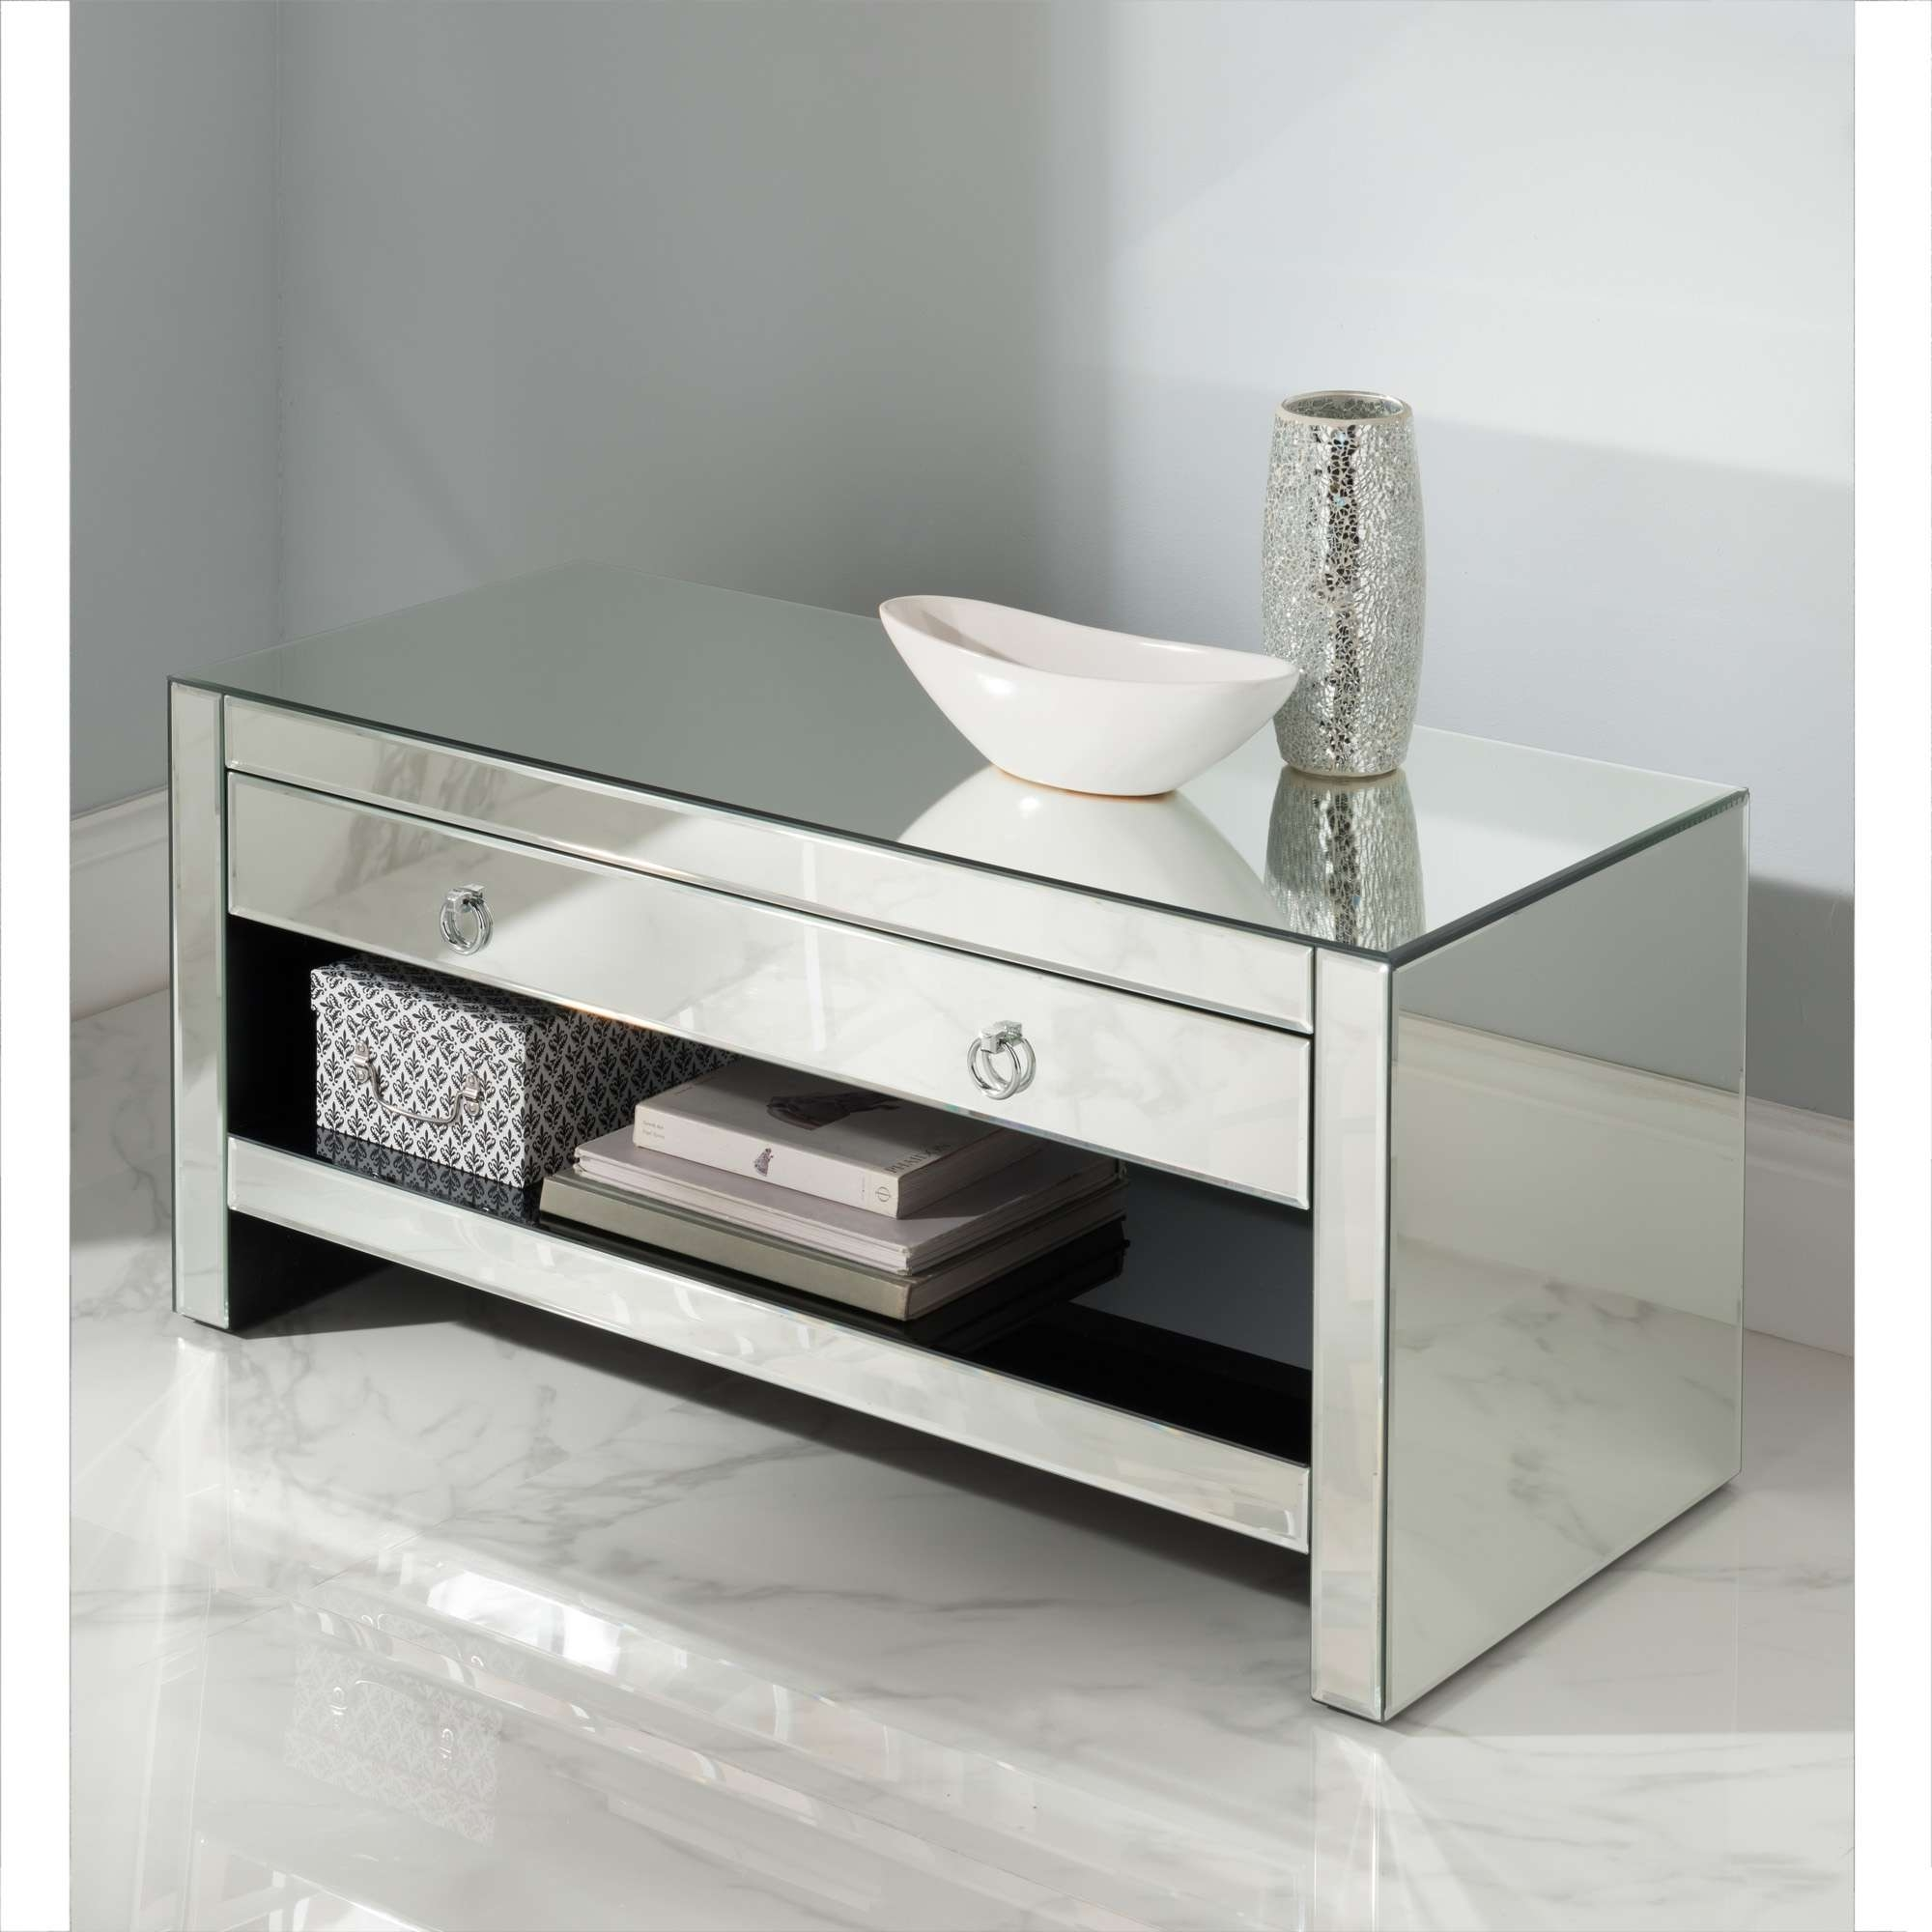 Mirrored Tv Cabinet | Glass Venetian Furniture | Homesdirect365 With Mirrored Tv Cabinets Furniture (View 8 of 20)